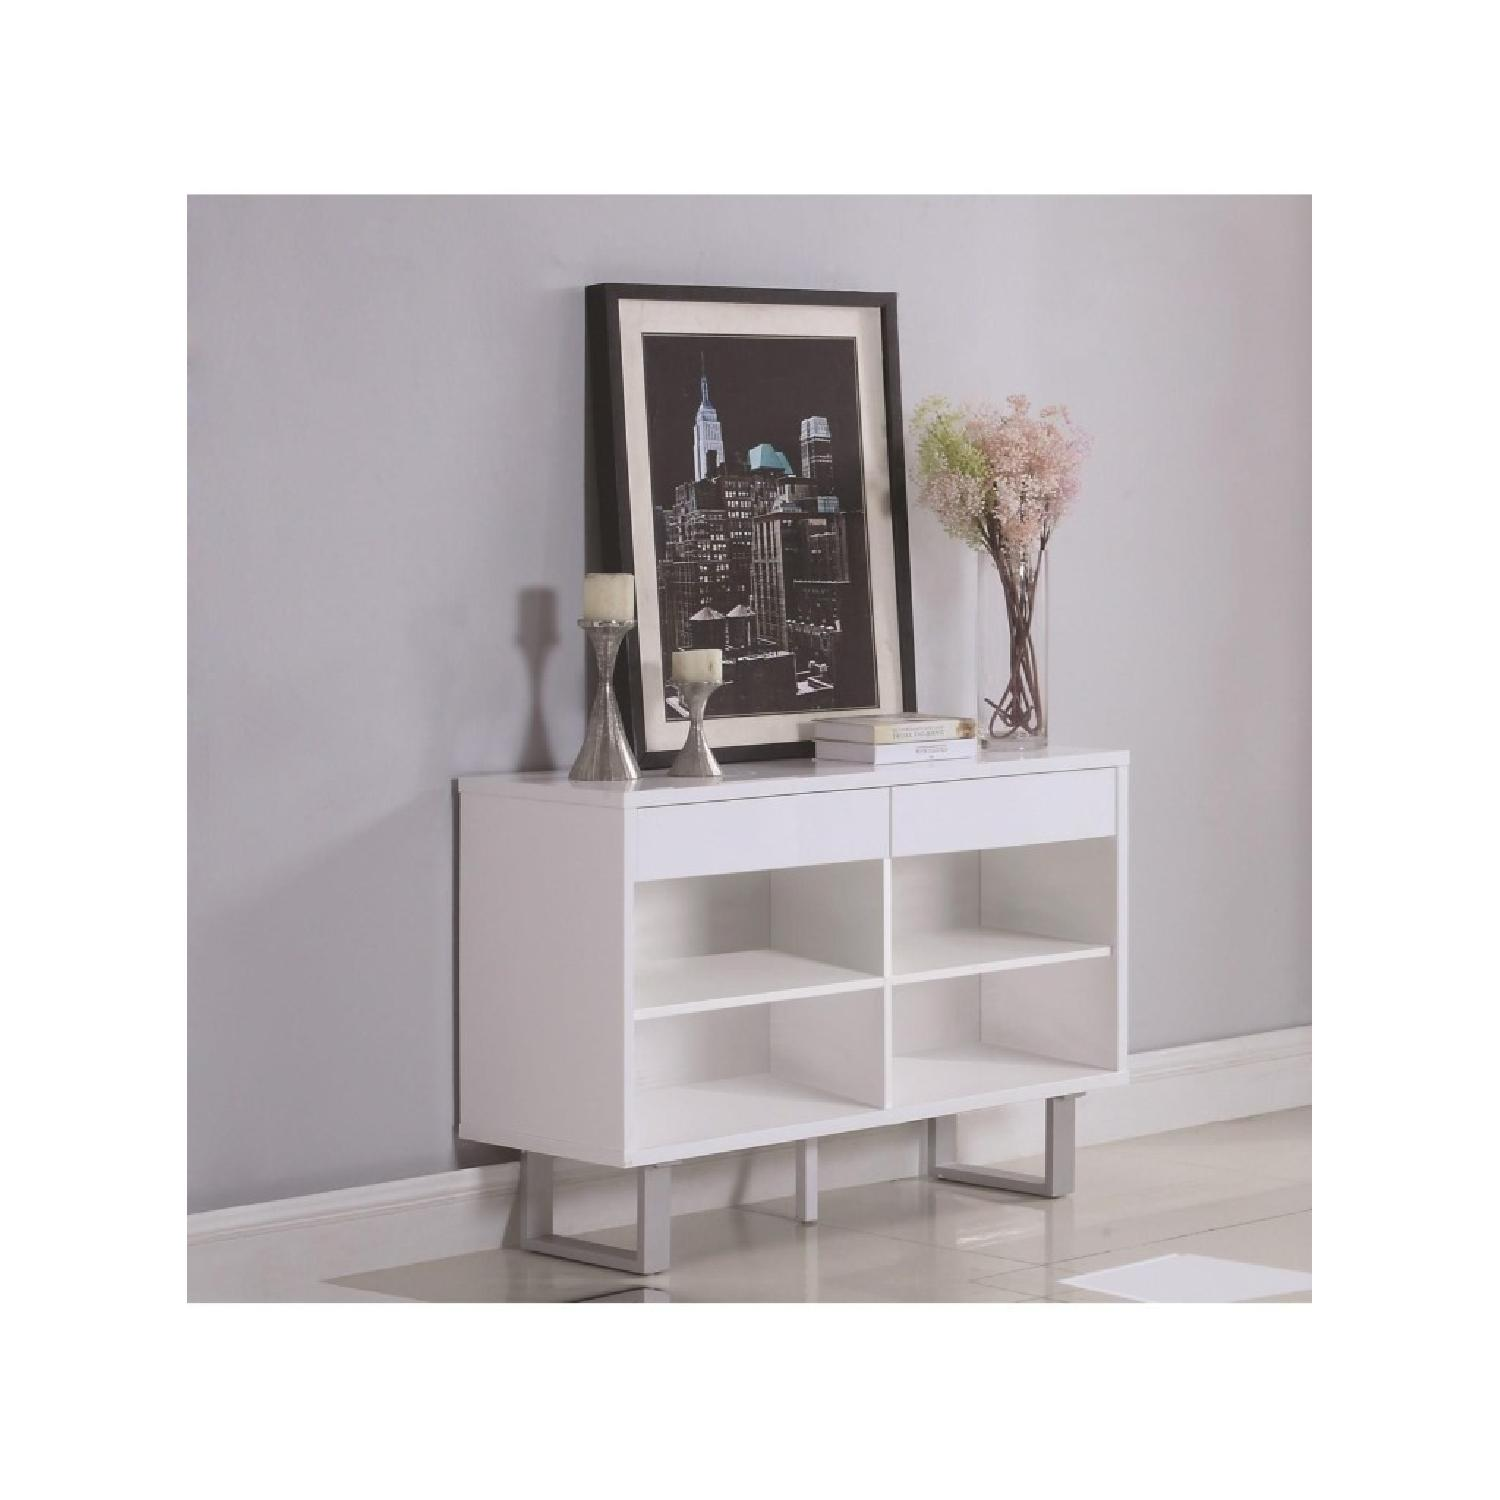 Contemporary Sofa Table in White Gloss w/ Drawers-0